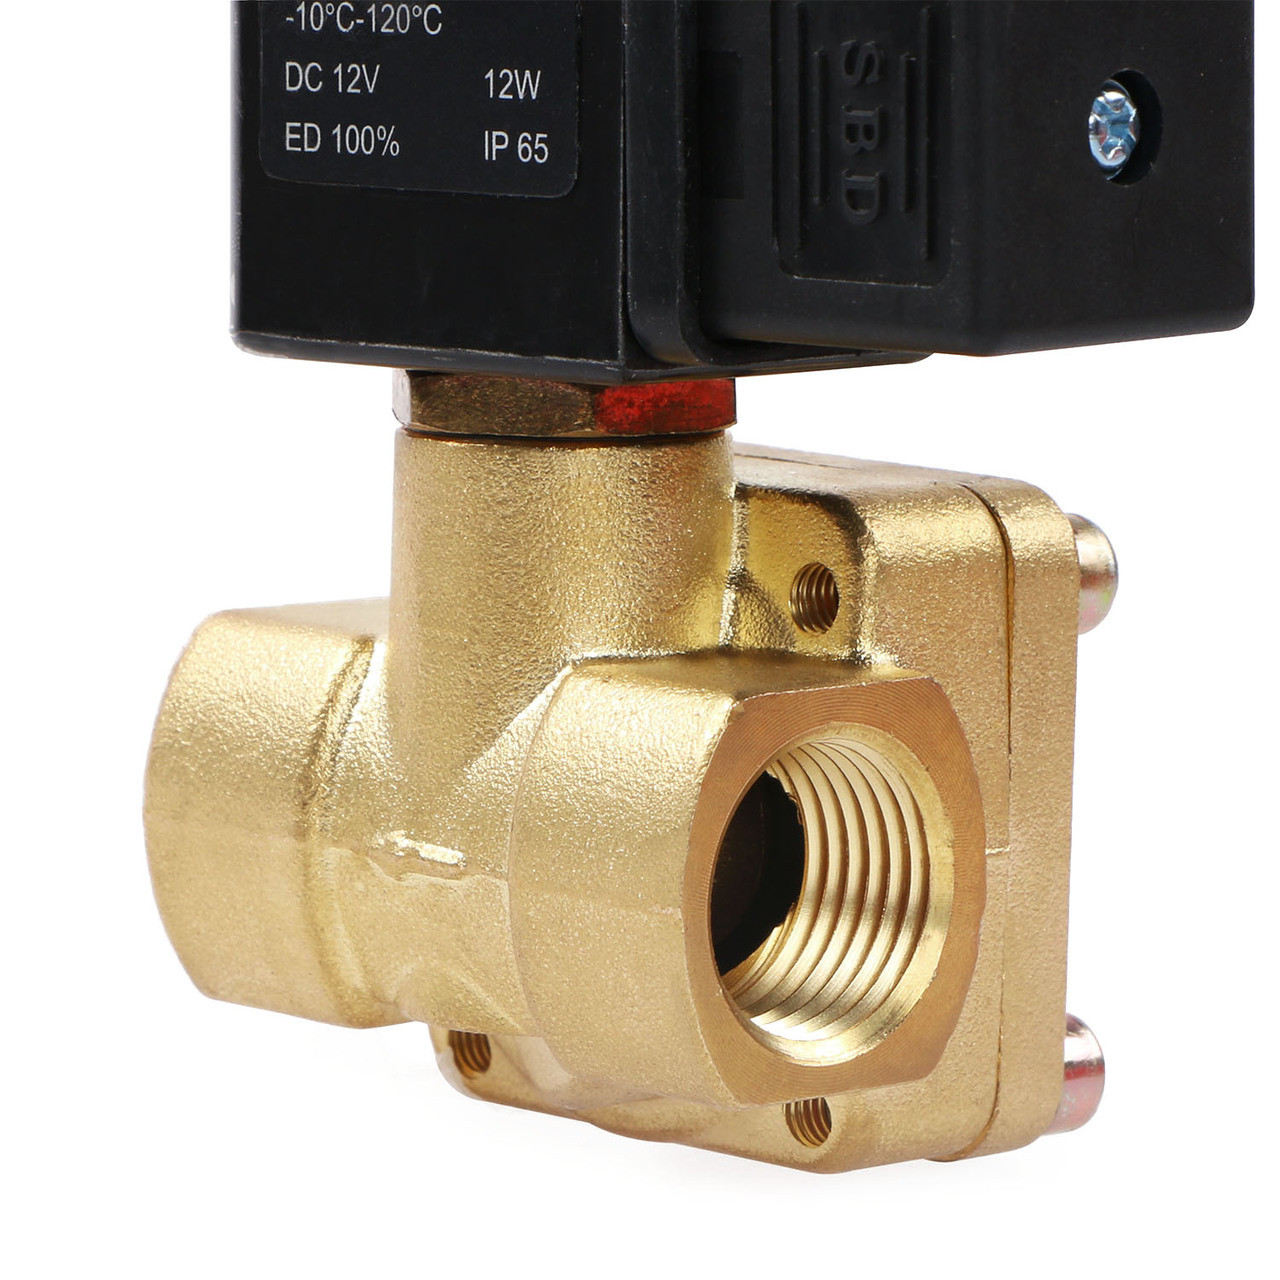 """USSOLID Electric Solenoid Valve- 1/2"""" 12V DC Solenoid Valve Brass Body Normally Closed, Pilot Type, VITON SEAL"""